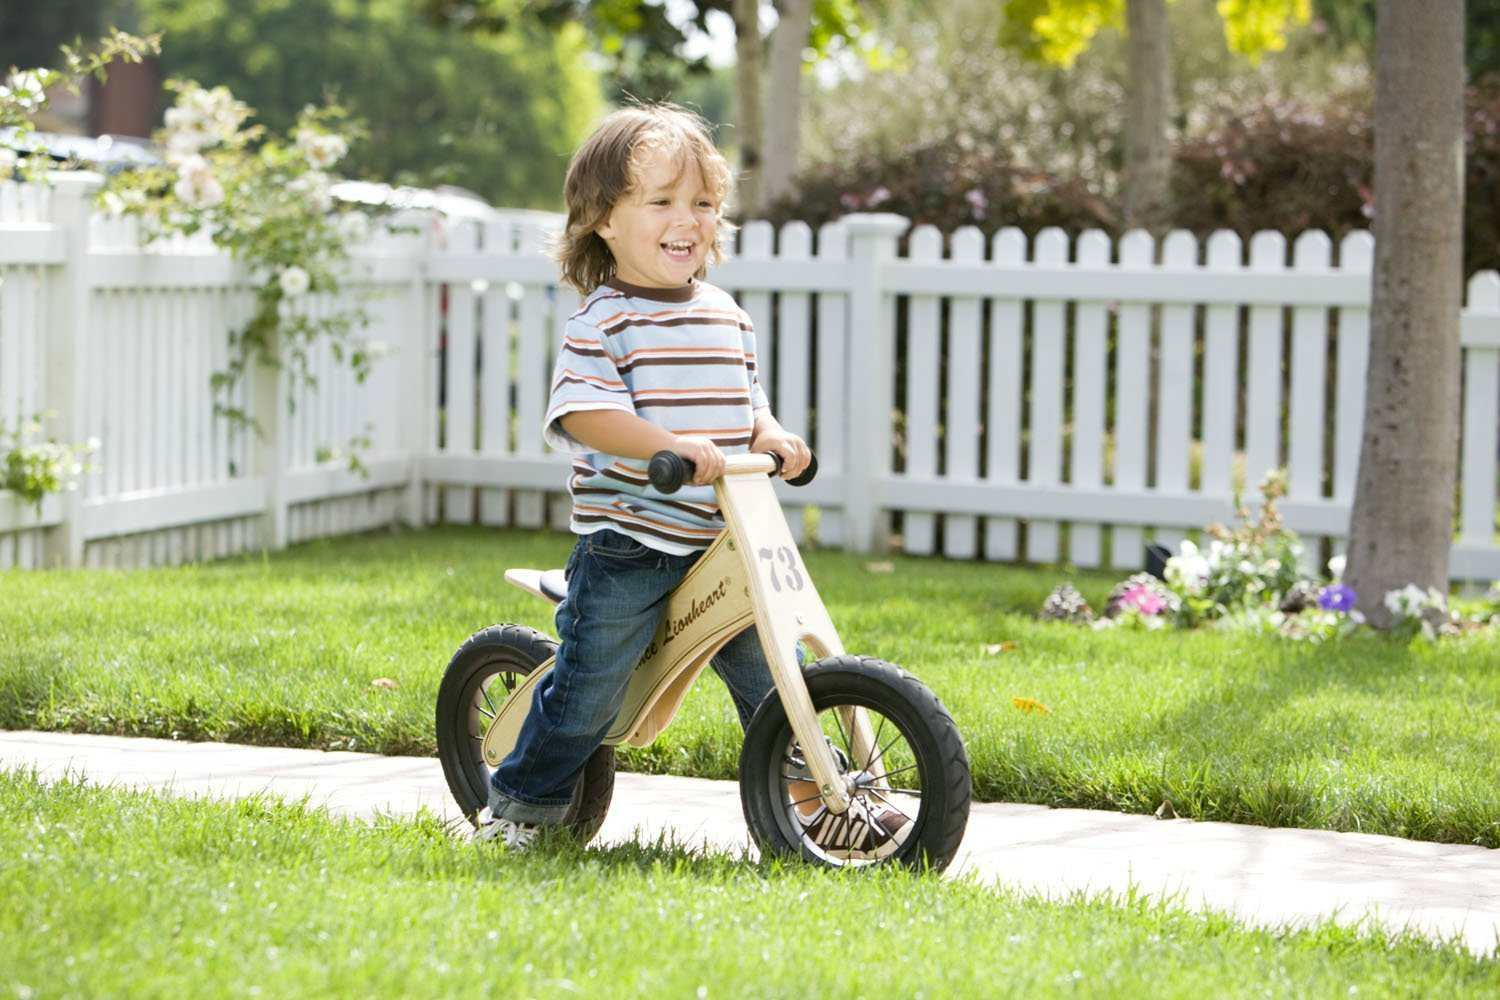 12 Best Ride On Toys For Toddlers And Preschoolers